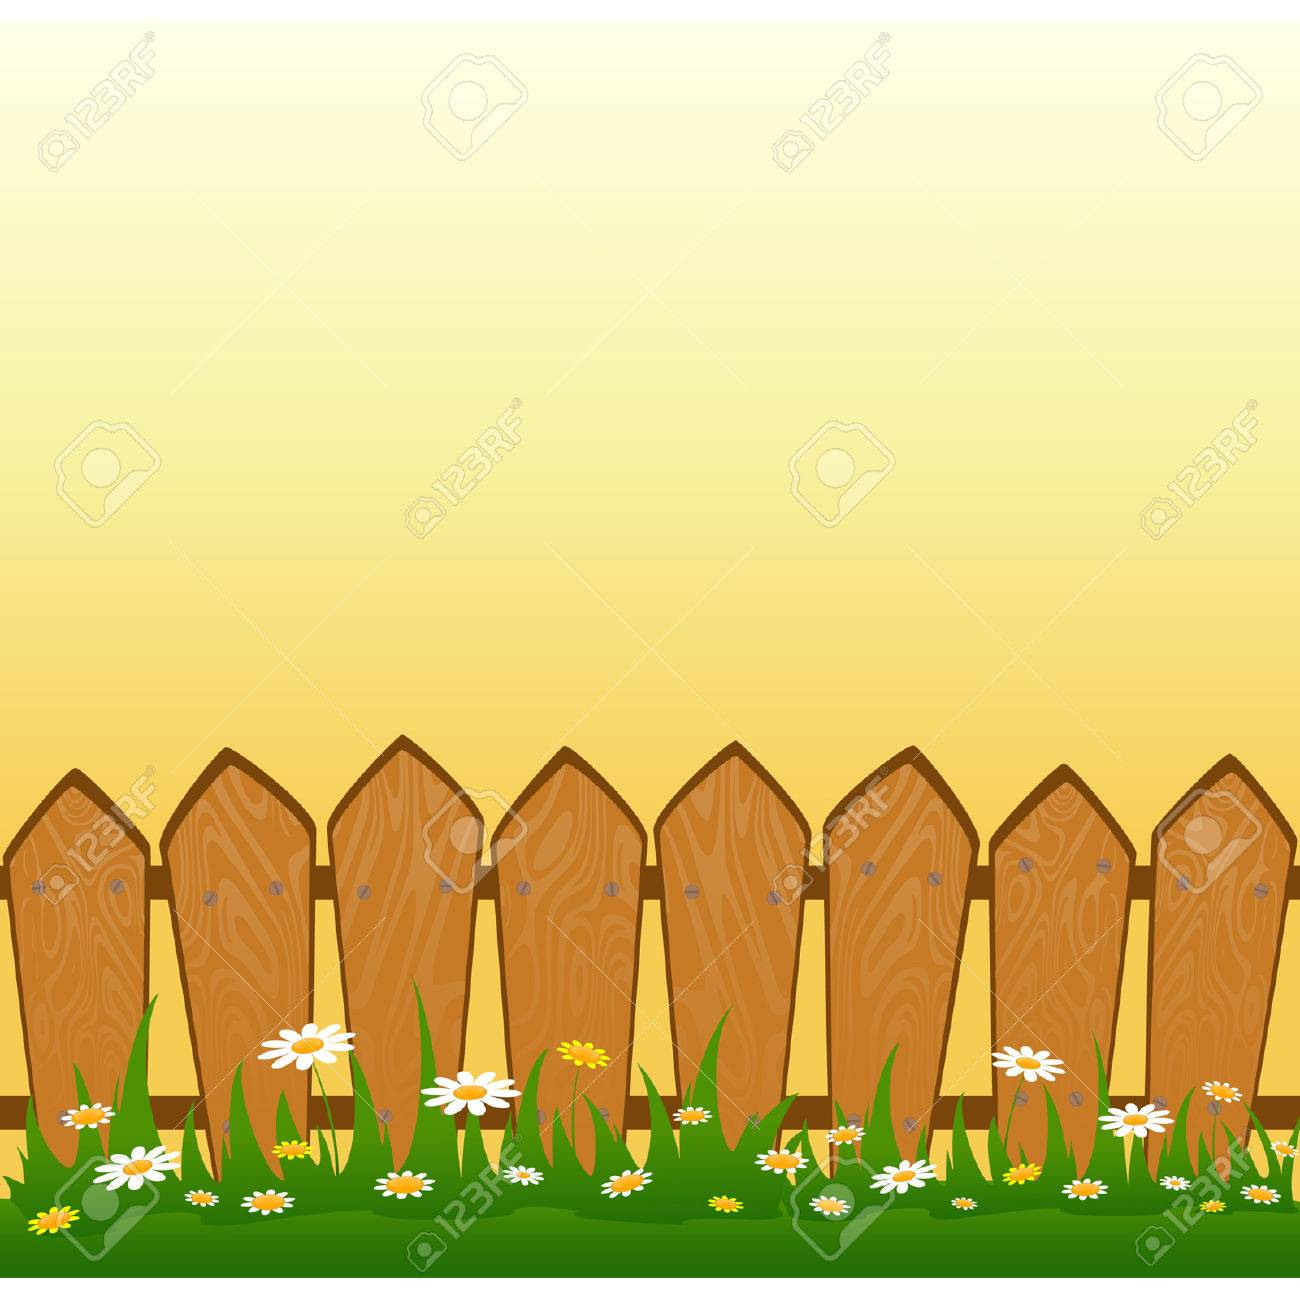 Country Fence Stock Vector - 7984247